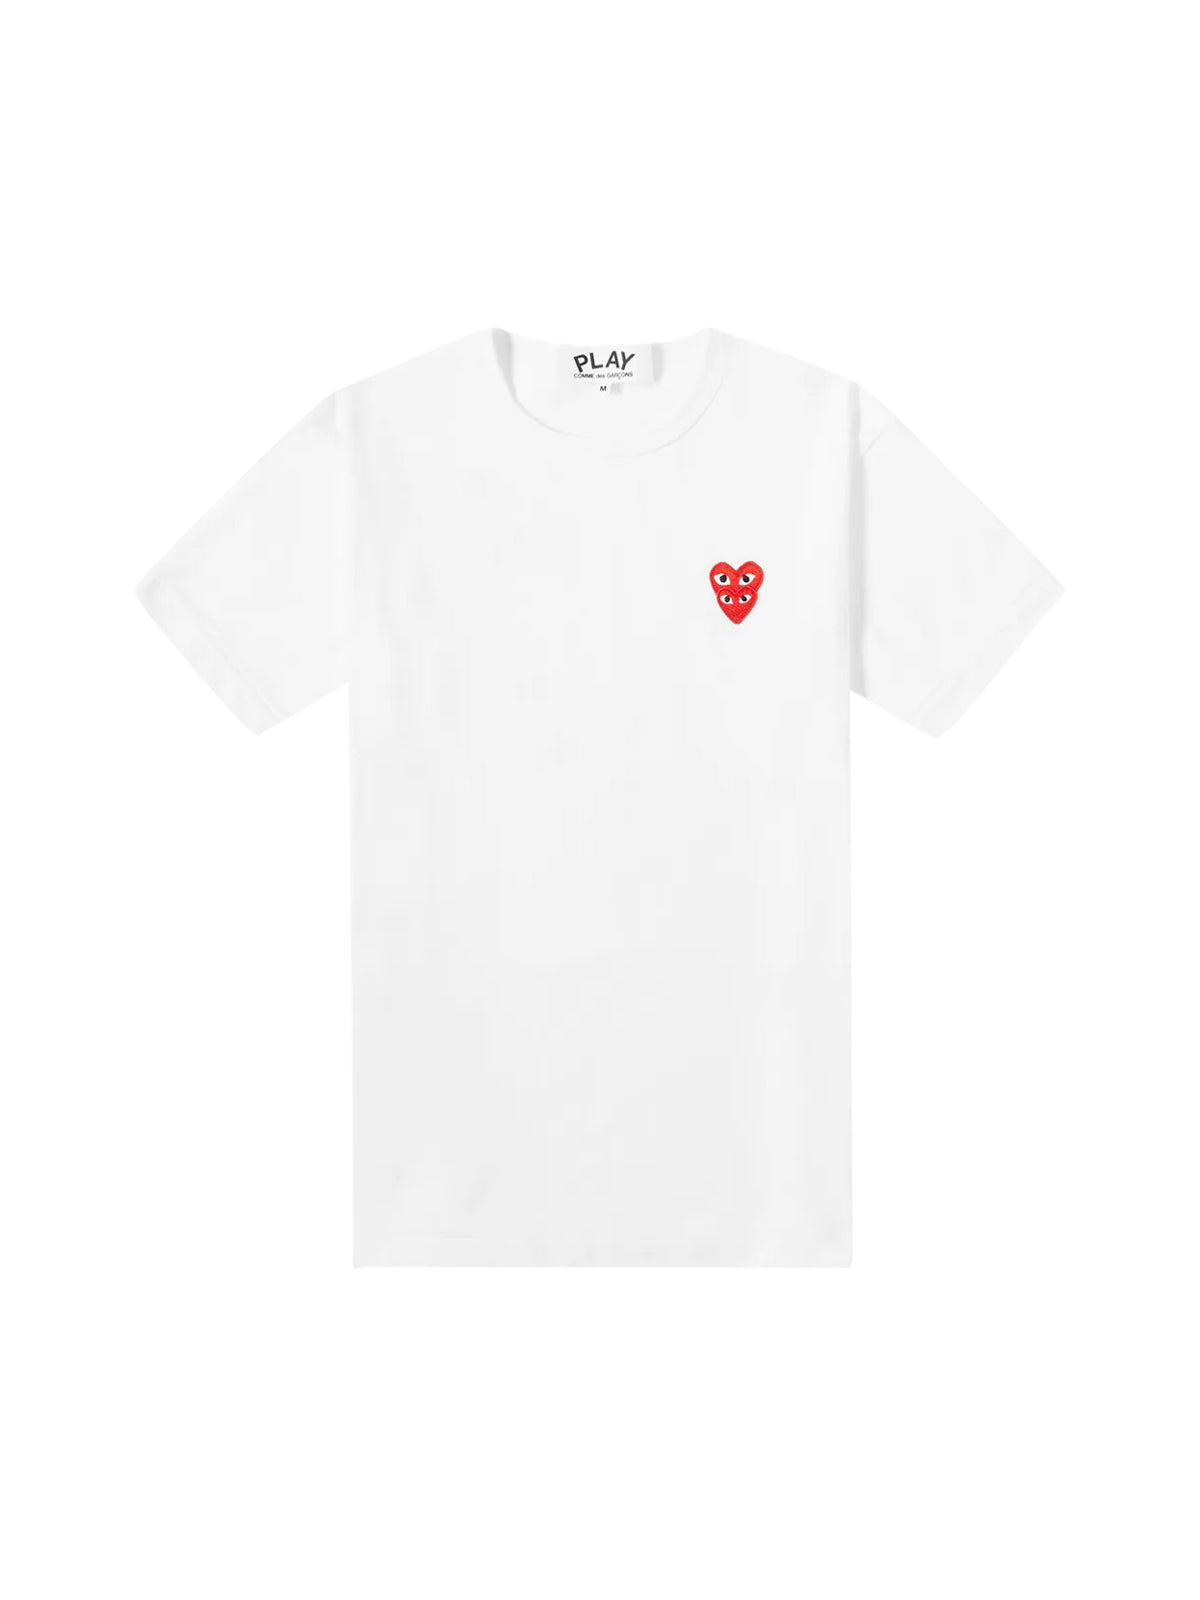 COMME DES GARCONS PLAY OVERLAPPING HEART TEE